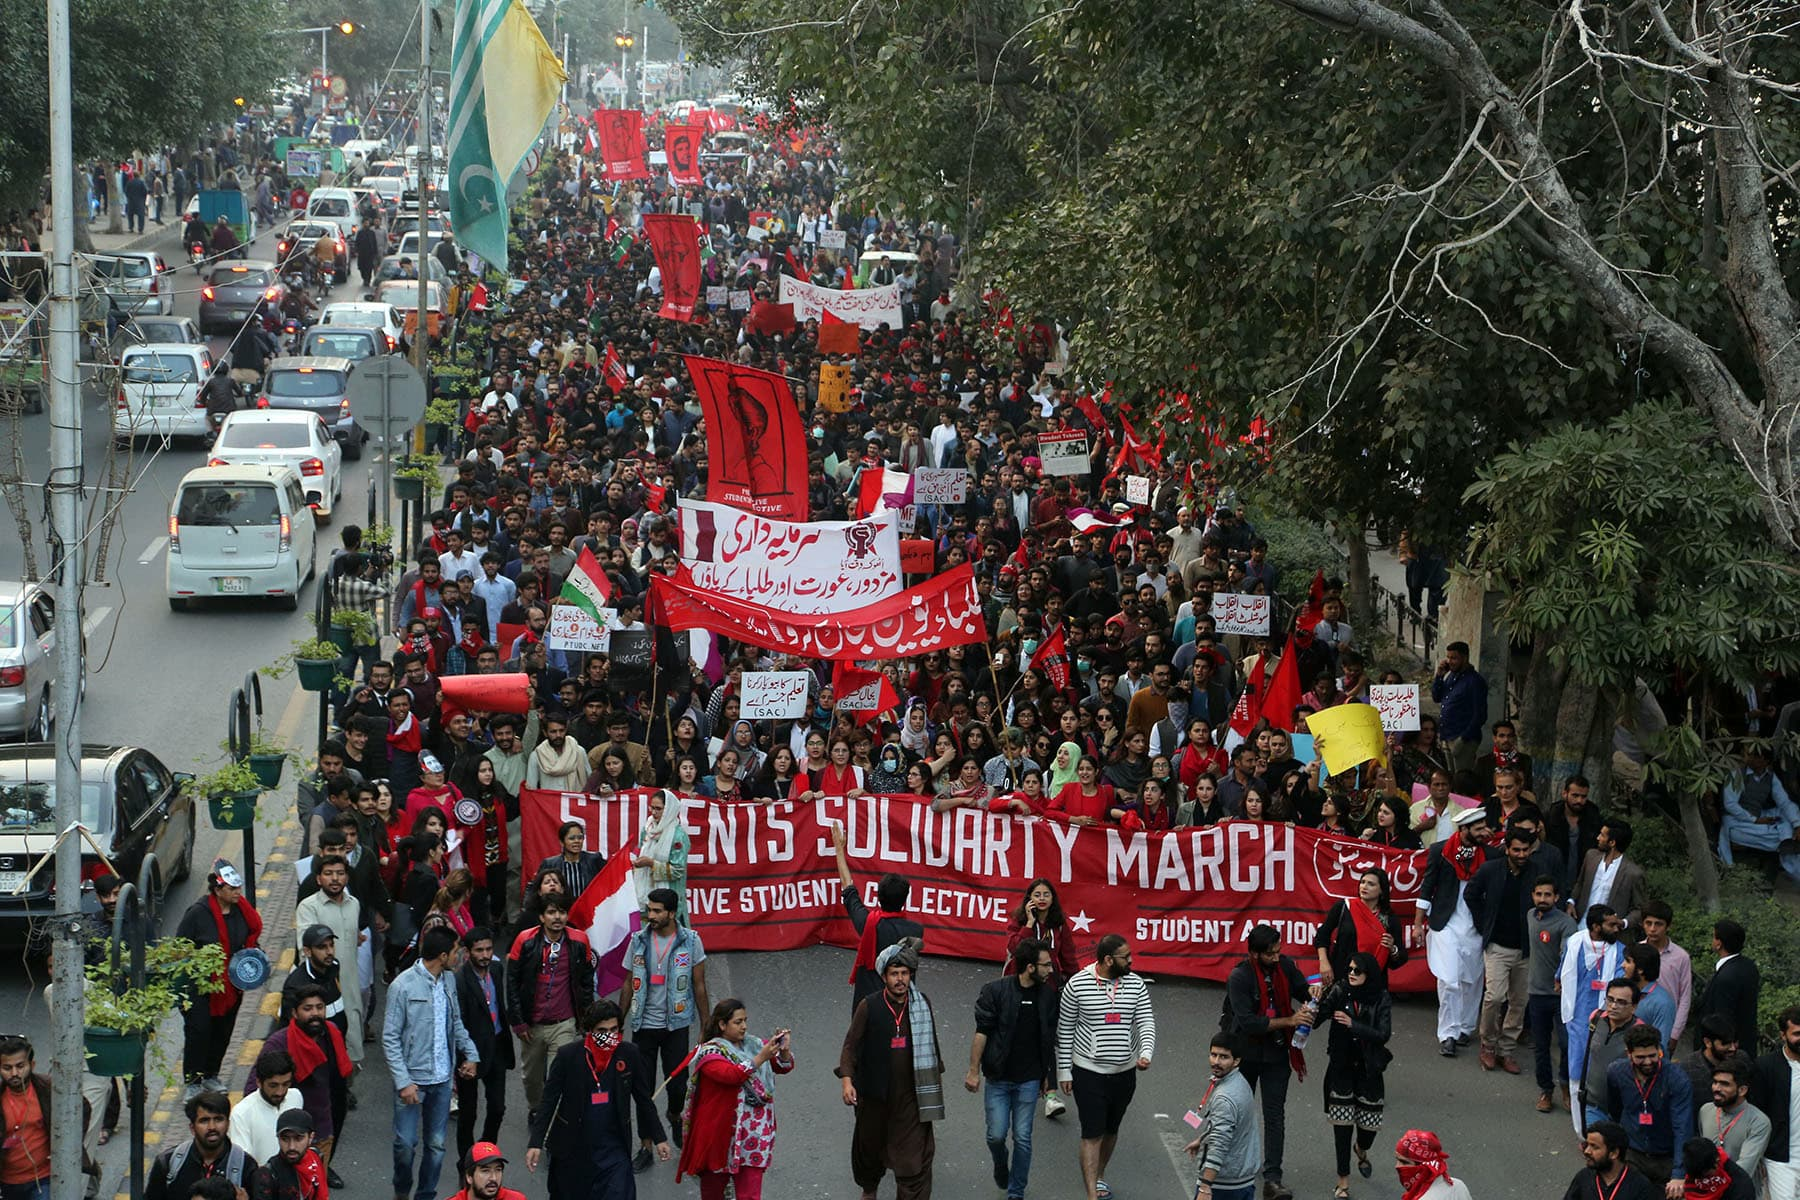 The Student Solidarity March in Lahore | Murtaza Ali/White Star